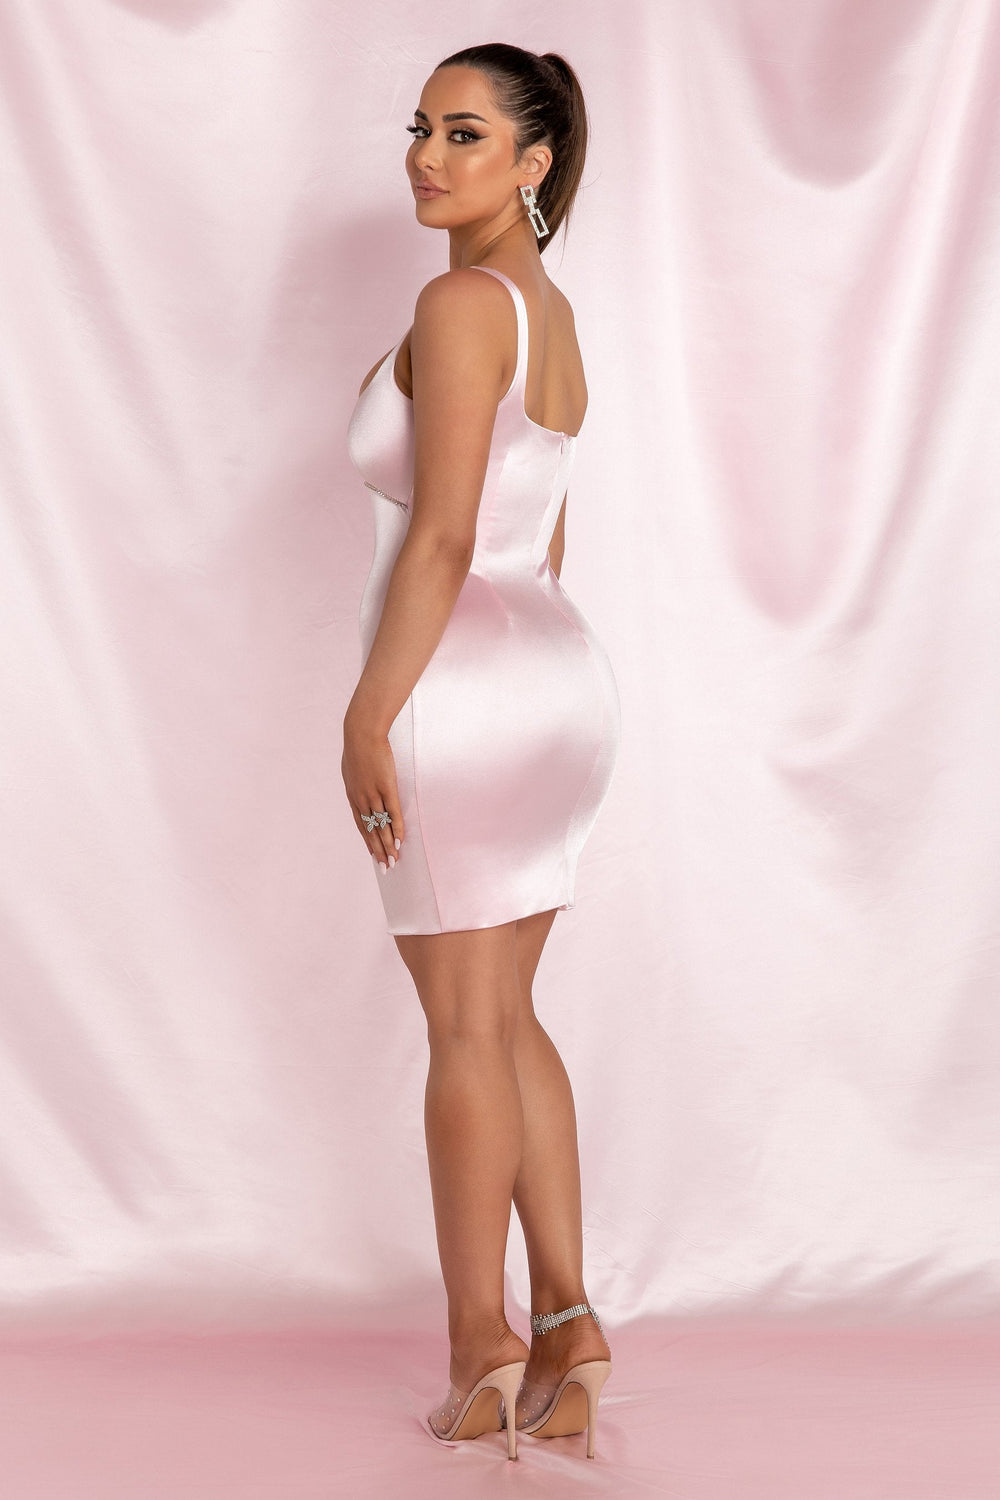 Mallory Diamante Underbust Trim Mini Dress - Baby Pink - MESHKI ?id=15800572903499